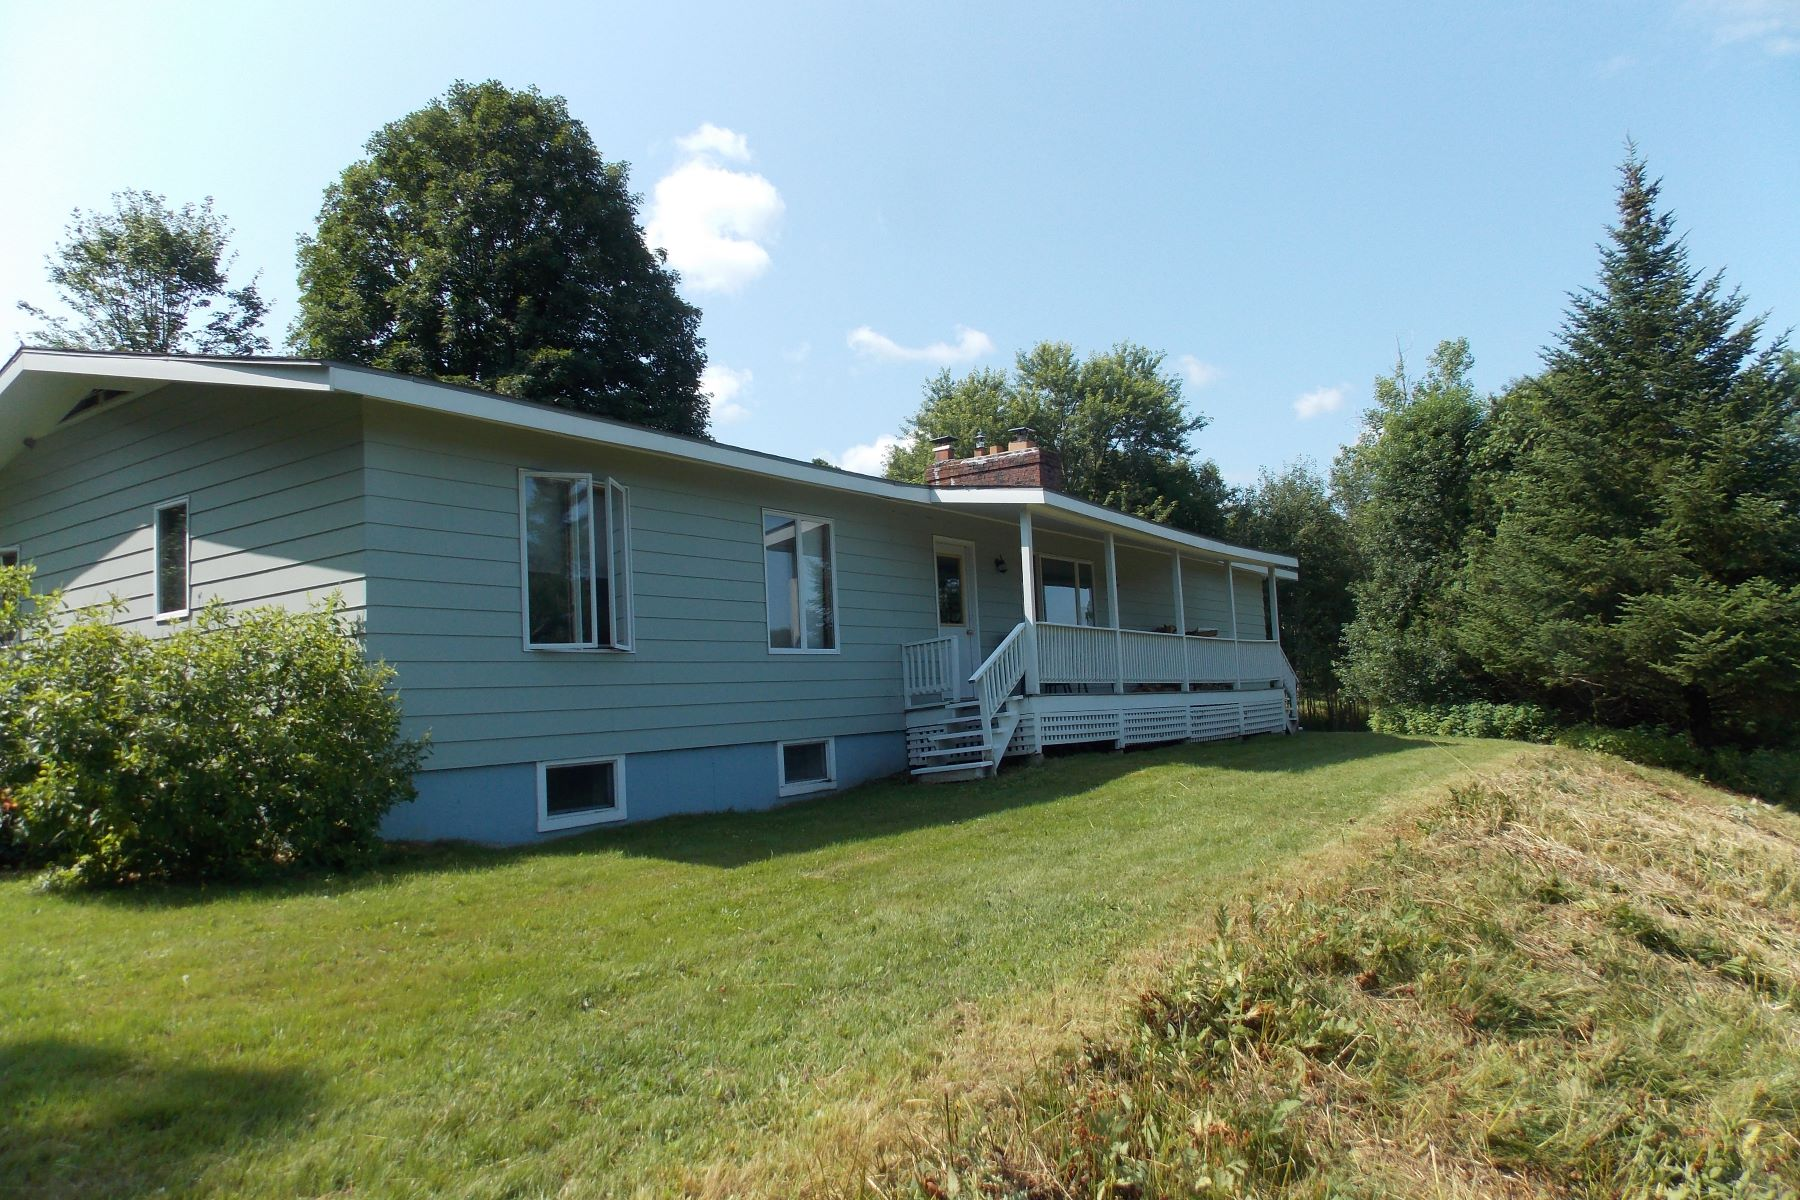 Single Family Homes for Sale at 33 Timshel Drive, Cambridge 33 Timshel Dr Cambridge, Vermont 05464 United States